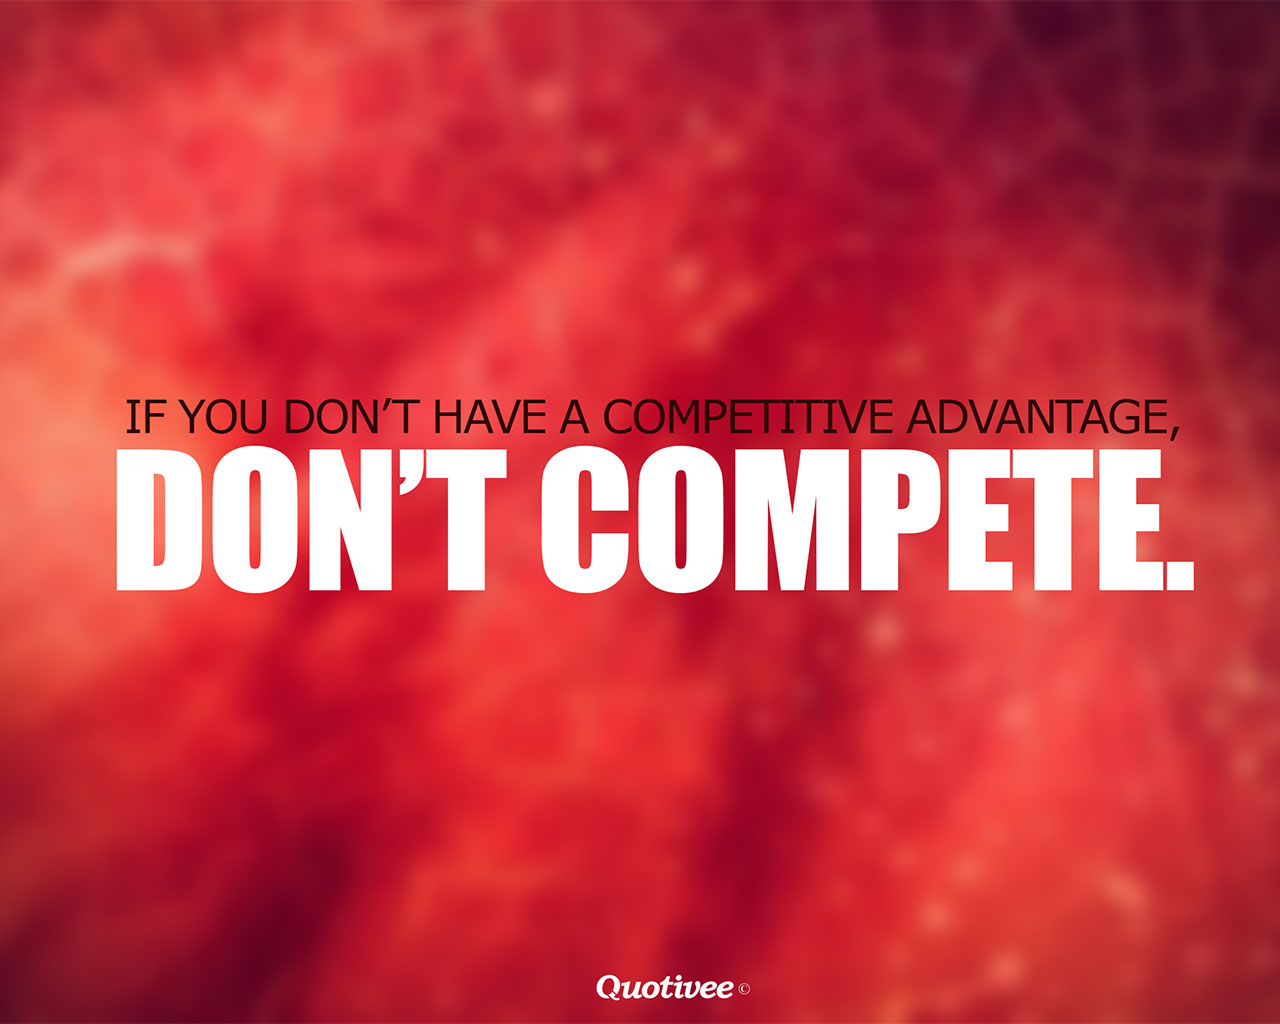 quotivee_1280x1024_0003_If you don't have a competitive advantage,  don't compete.